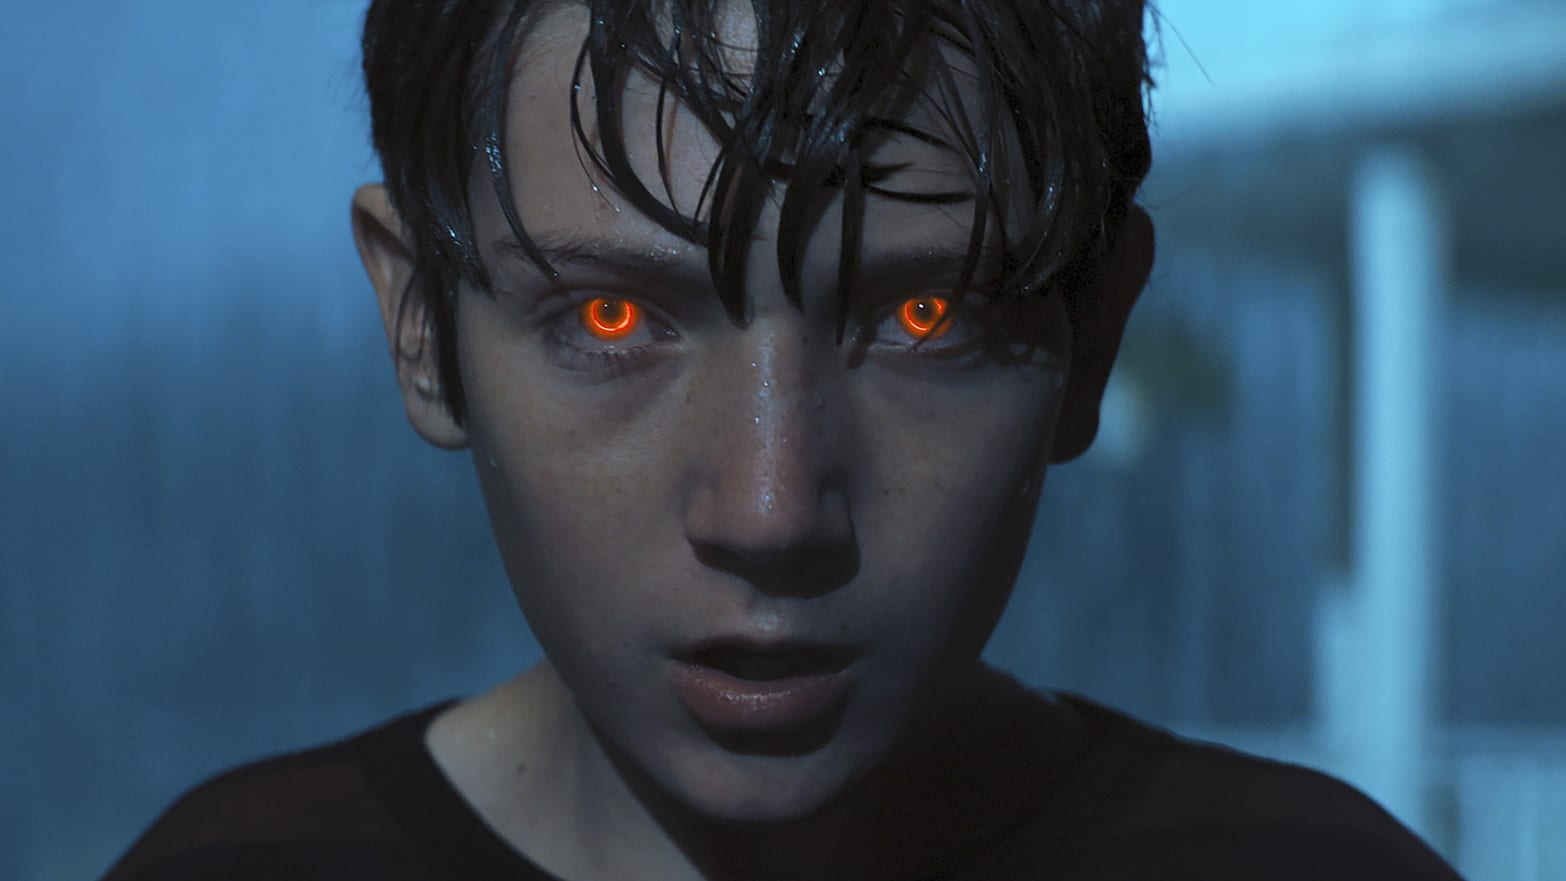 James Gunn's 'Brightburn': What If Superman Was a Murderous, Sexually-Frustrated Supervillain?